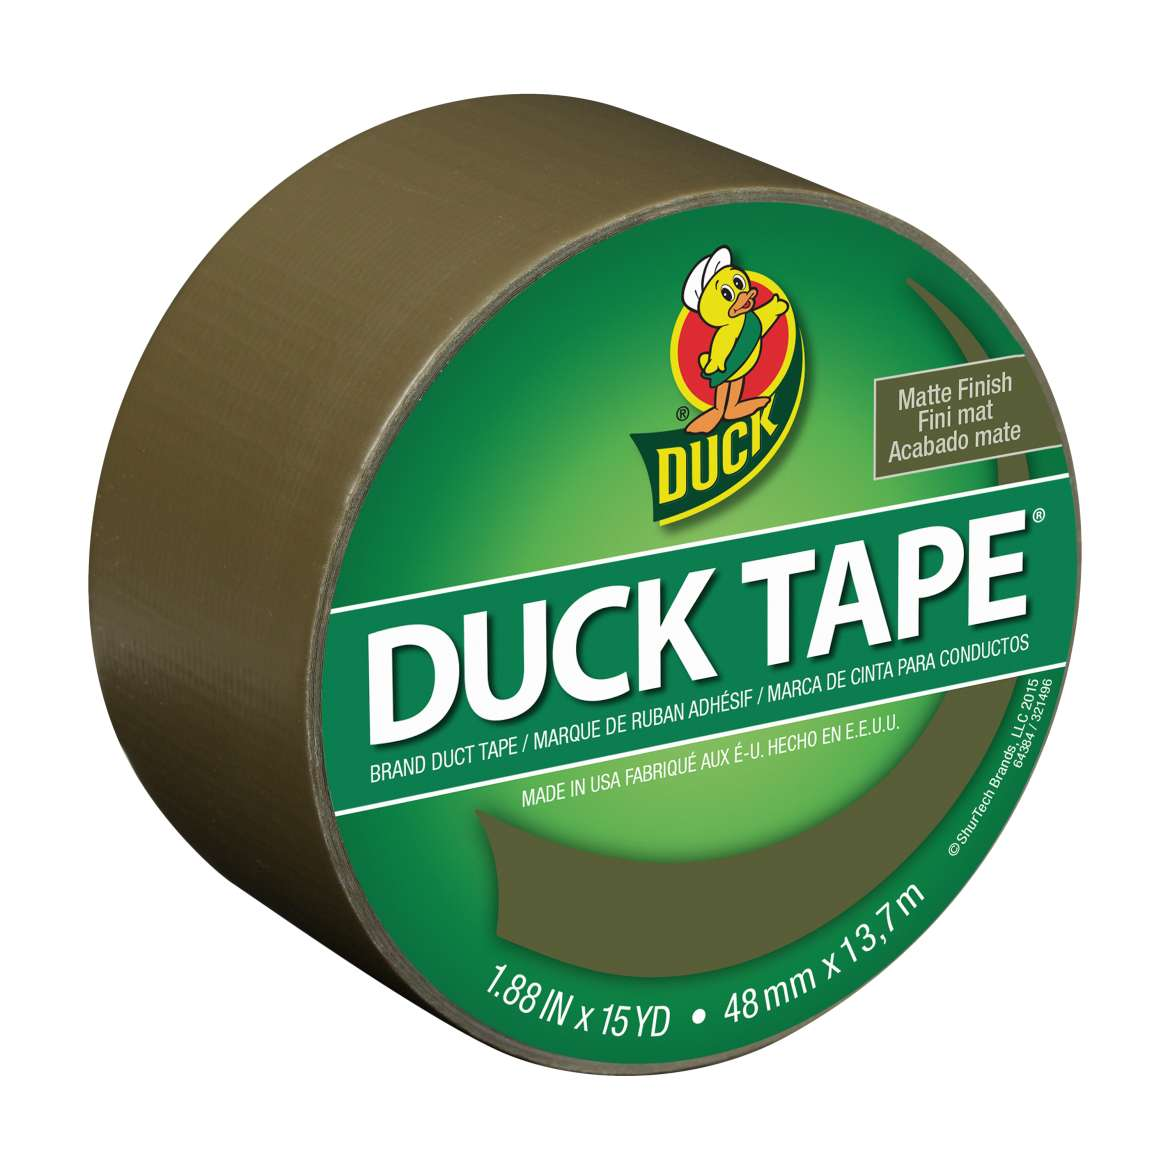 Color Duck Tape® Brand Duct Tape - Olive, 1.88 in. x 15 yd. Image